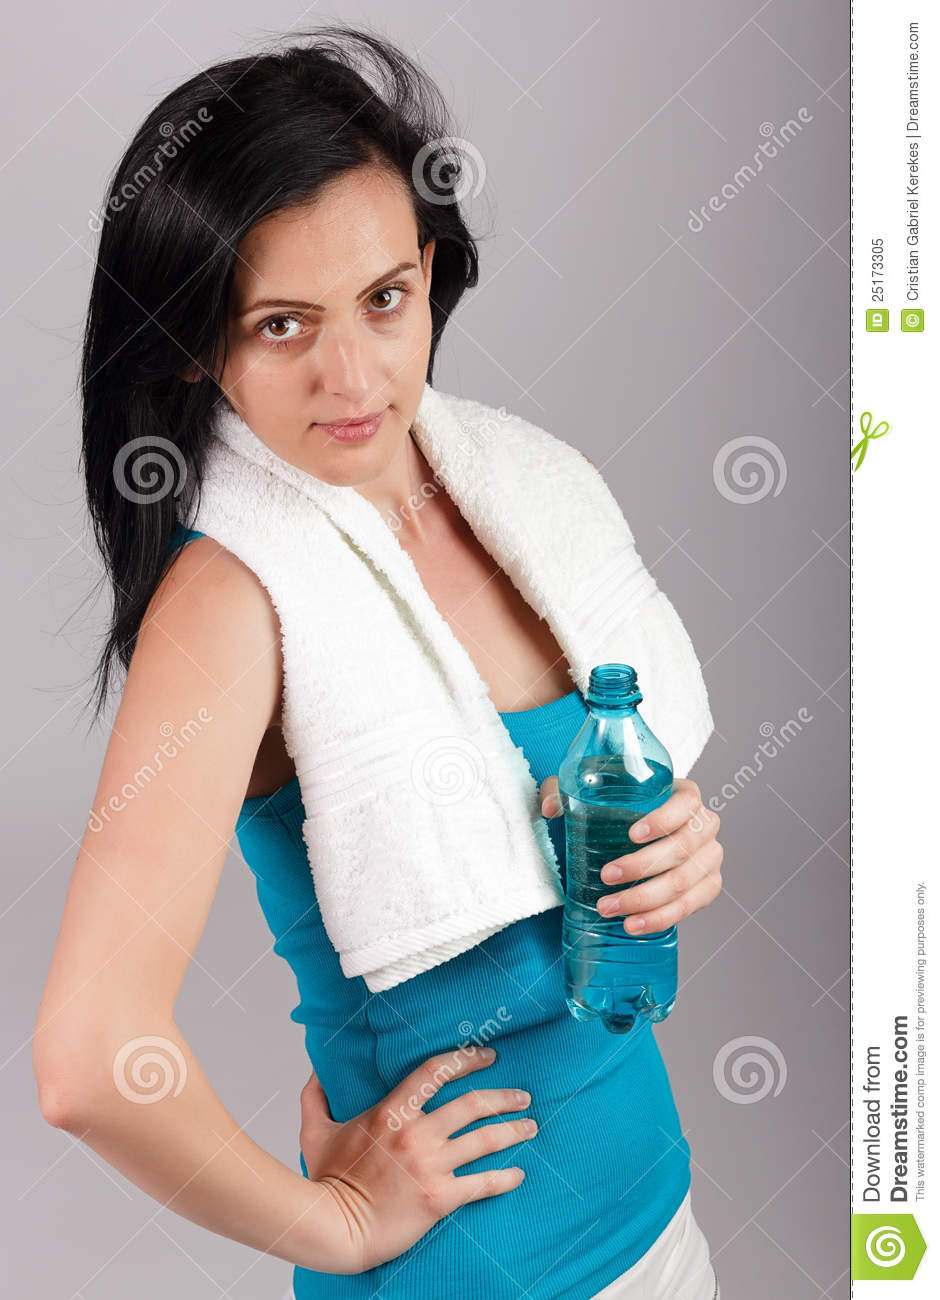 Young Woman Holding Water Bottle Royalty Free Stock Photo ...